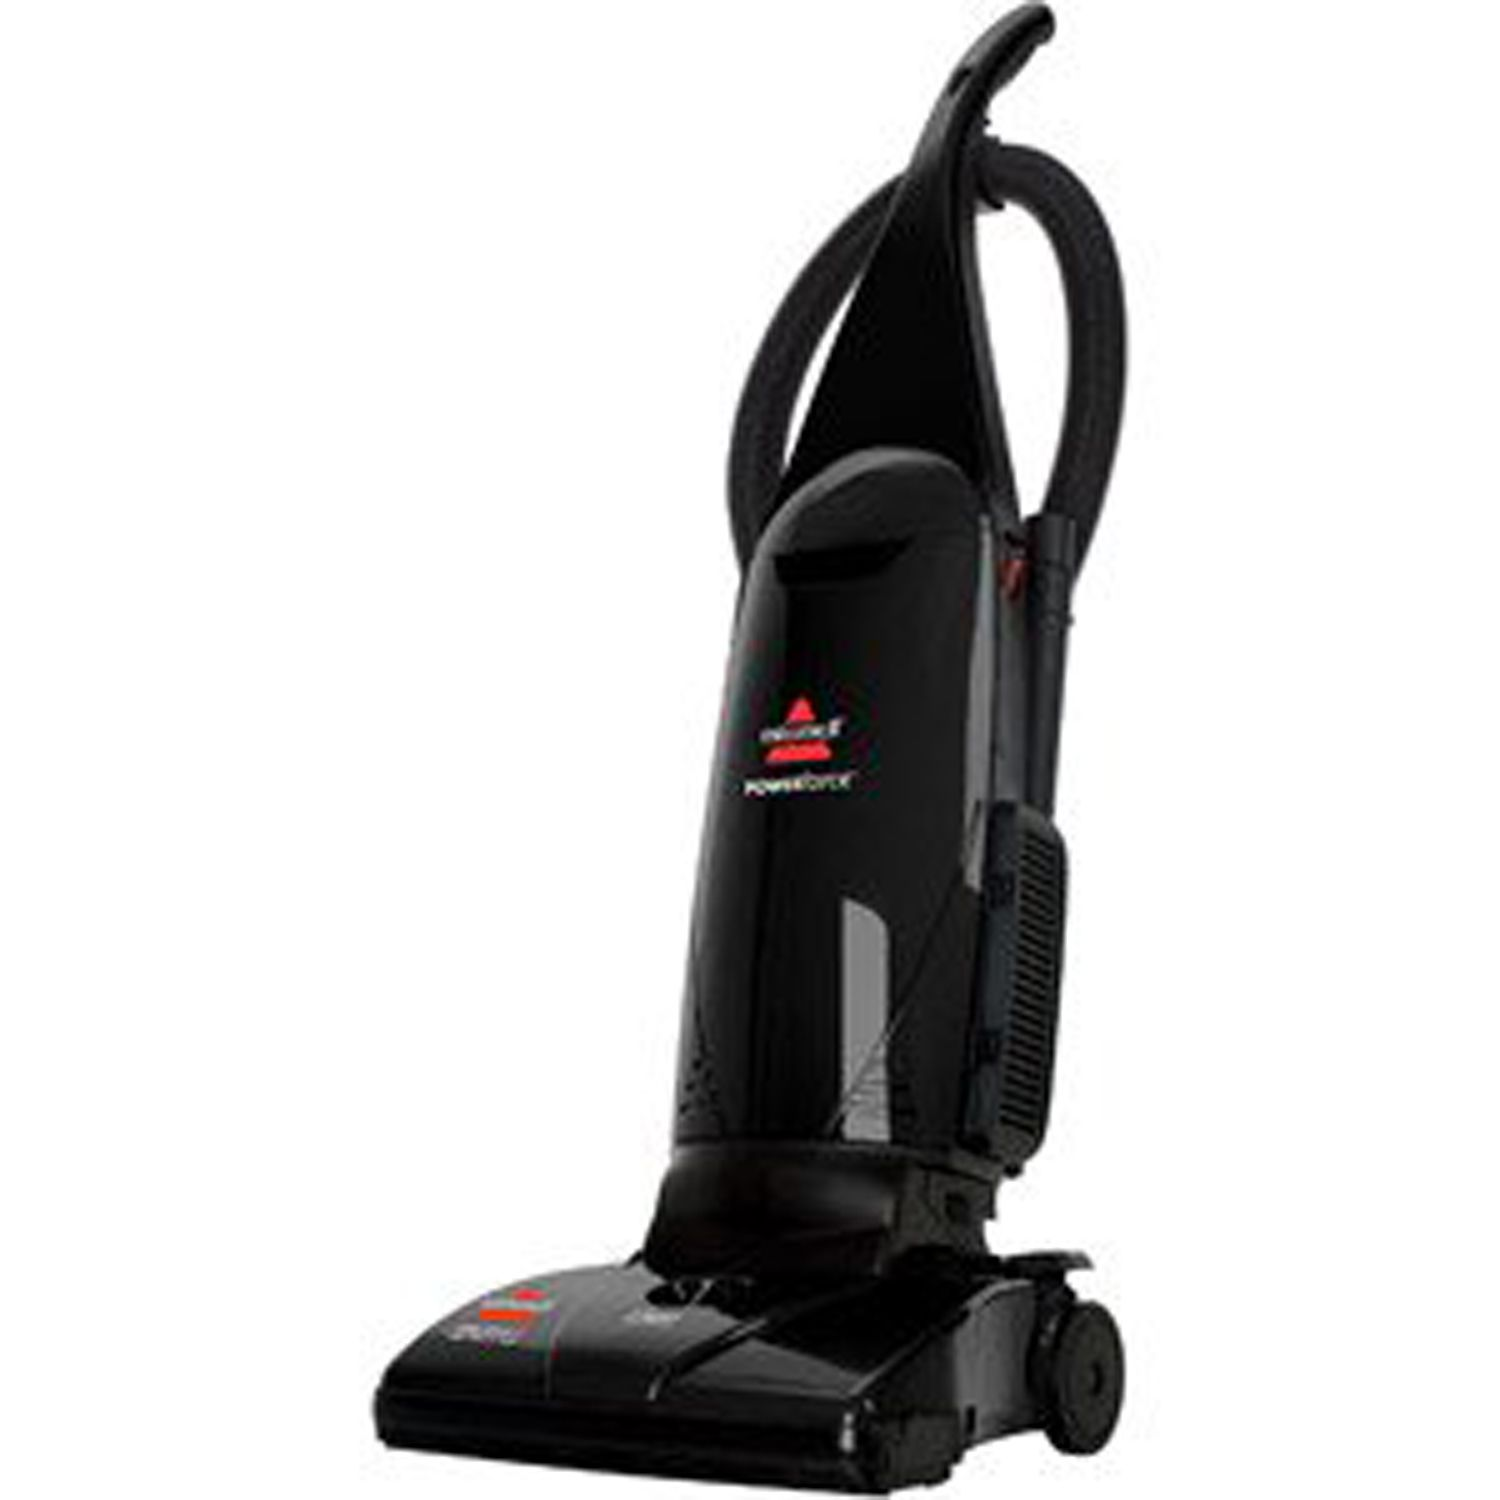 Bissell Powerforce Bagless Upright Vacuum Review